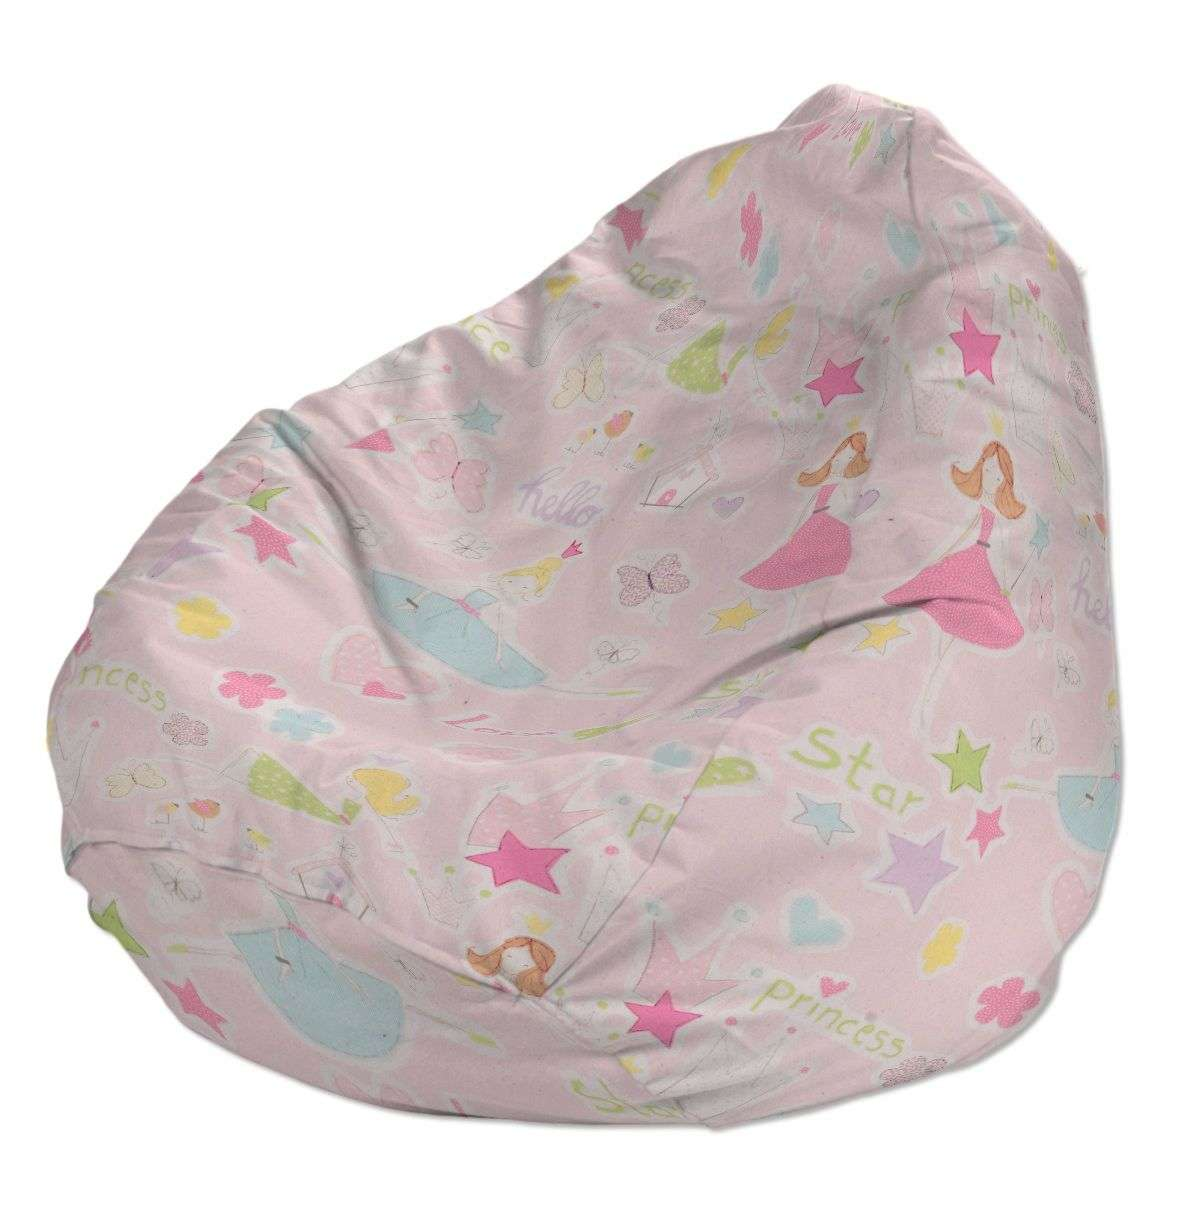 Beanbag Ø50 x 85 cm (20 x 33,5 inch) in collection Little World, fabric: 141-50